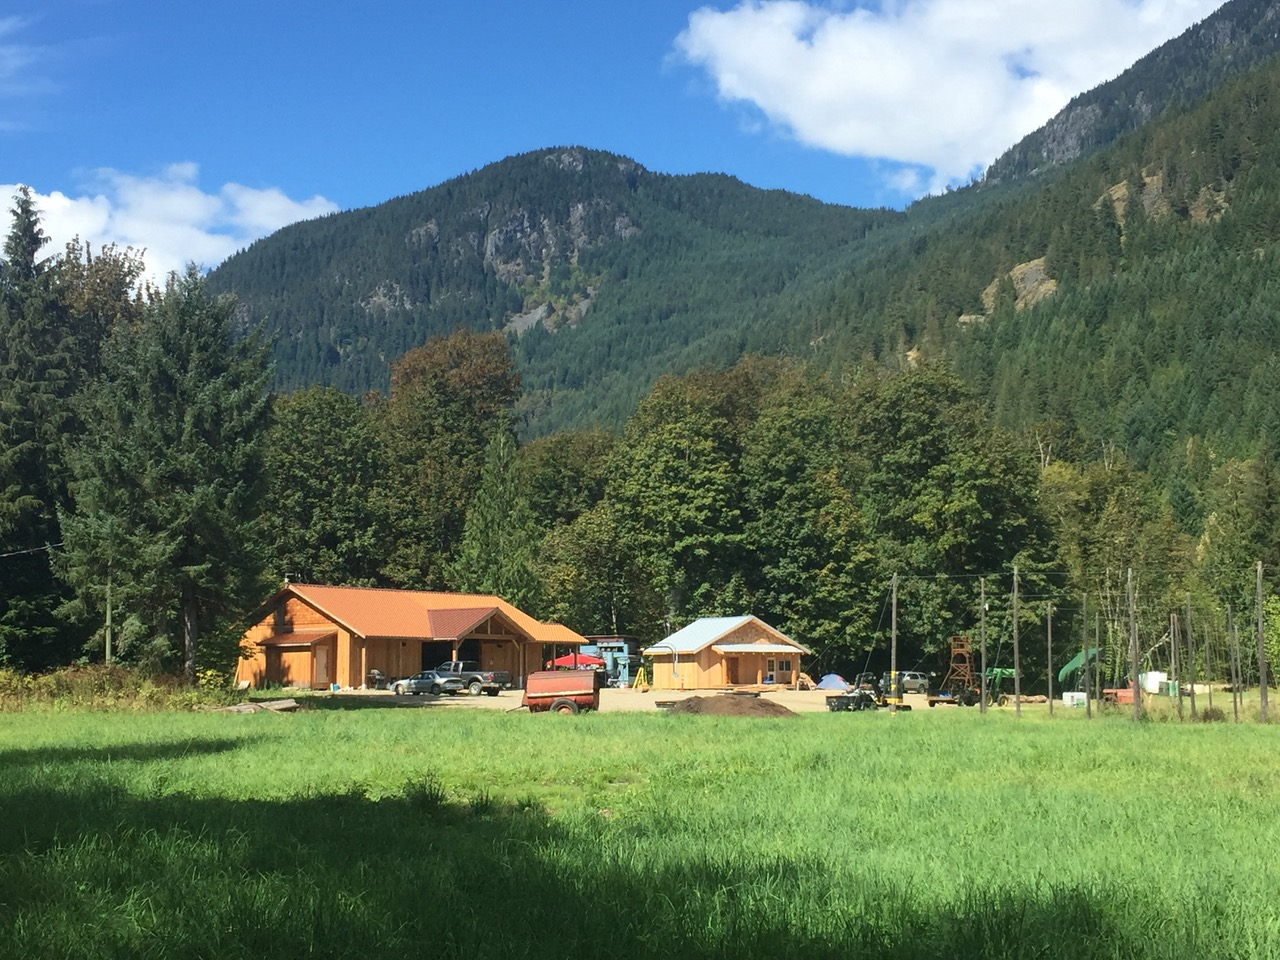 House on Squamish Valley Hop Farm with mountains in the background